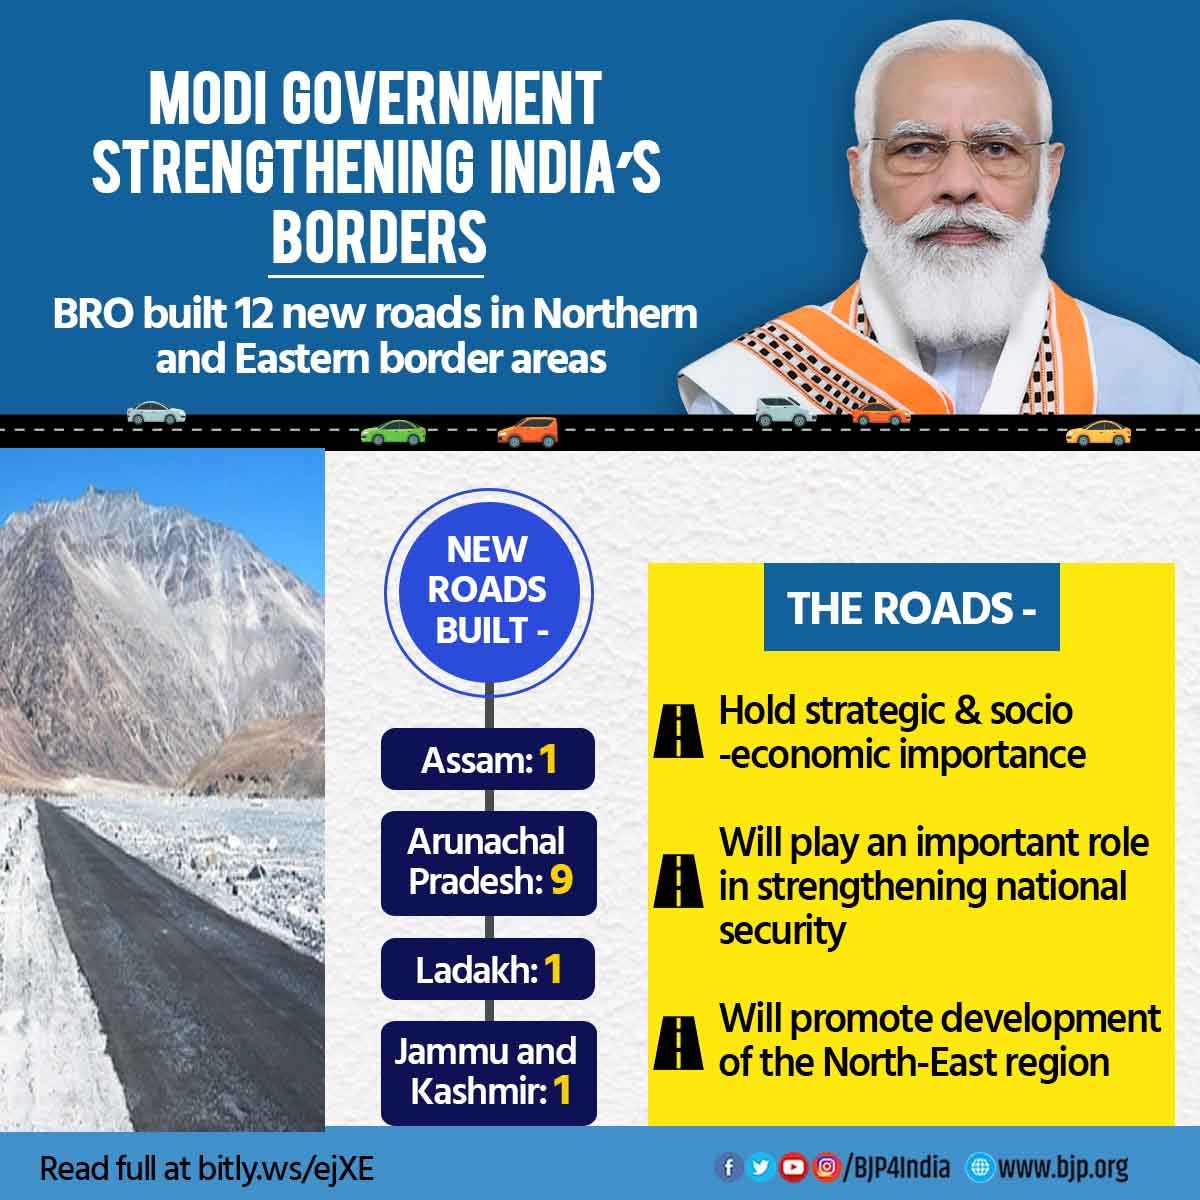 12 new roads built by BRO in Northern and Eastern border areas have been dedicated to the nation.  These roads will not only promote development in the North-East region but also play an important role in strengthening national security. https://t.co/pp0S4xWtKk